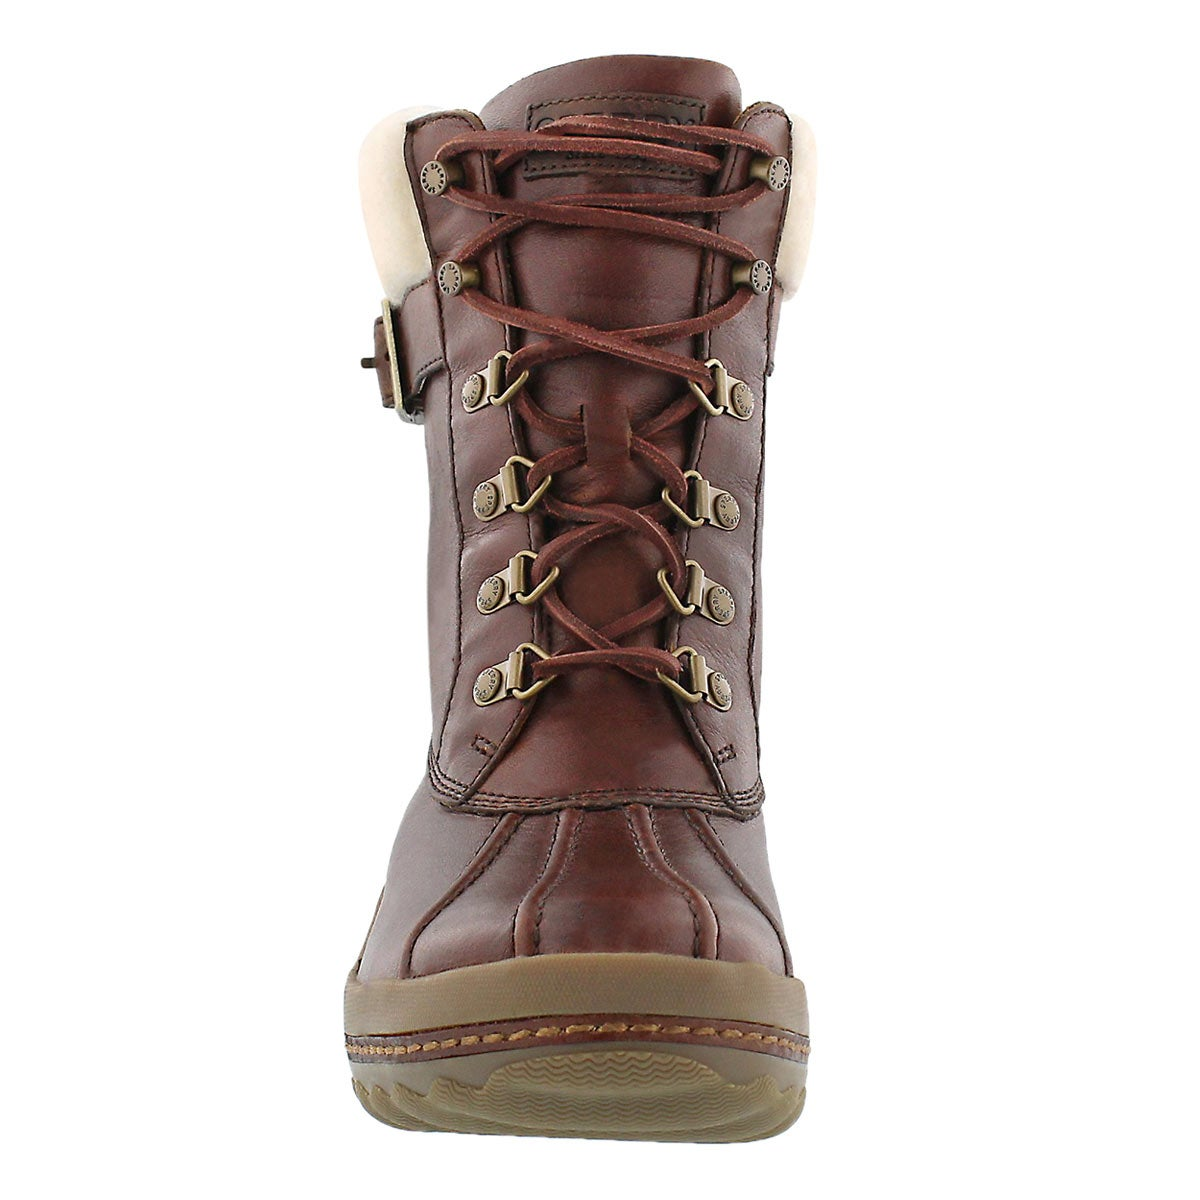 Lds Gold Cup Ava brown wtrprf ankle boot